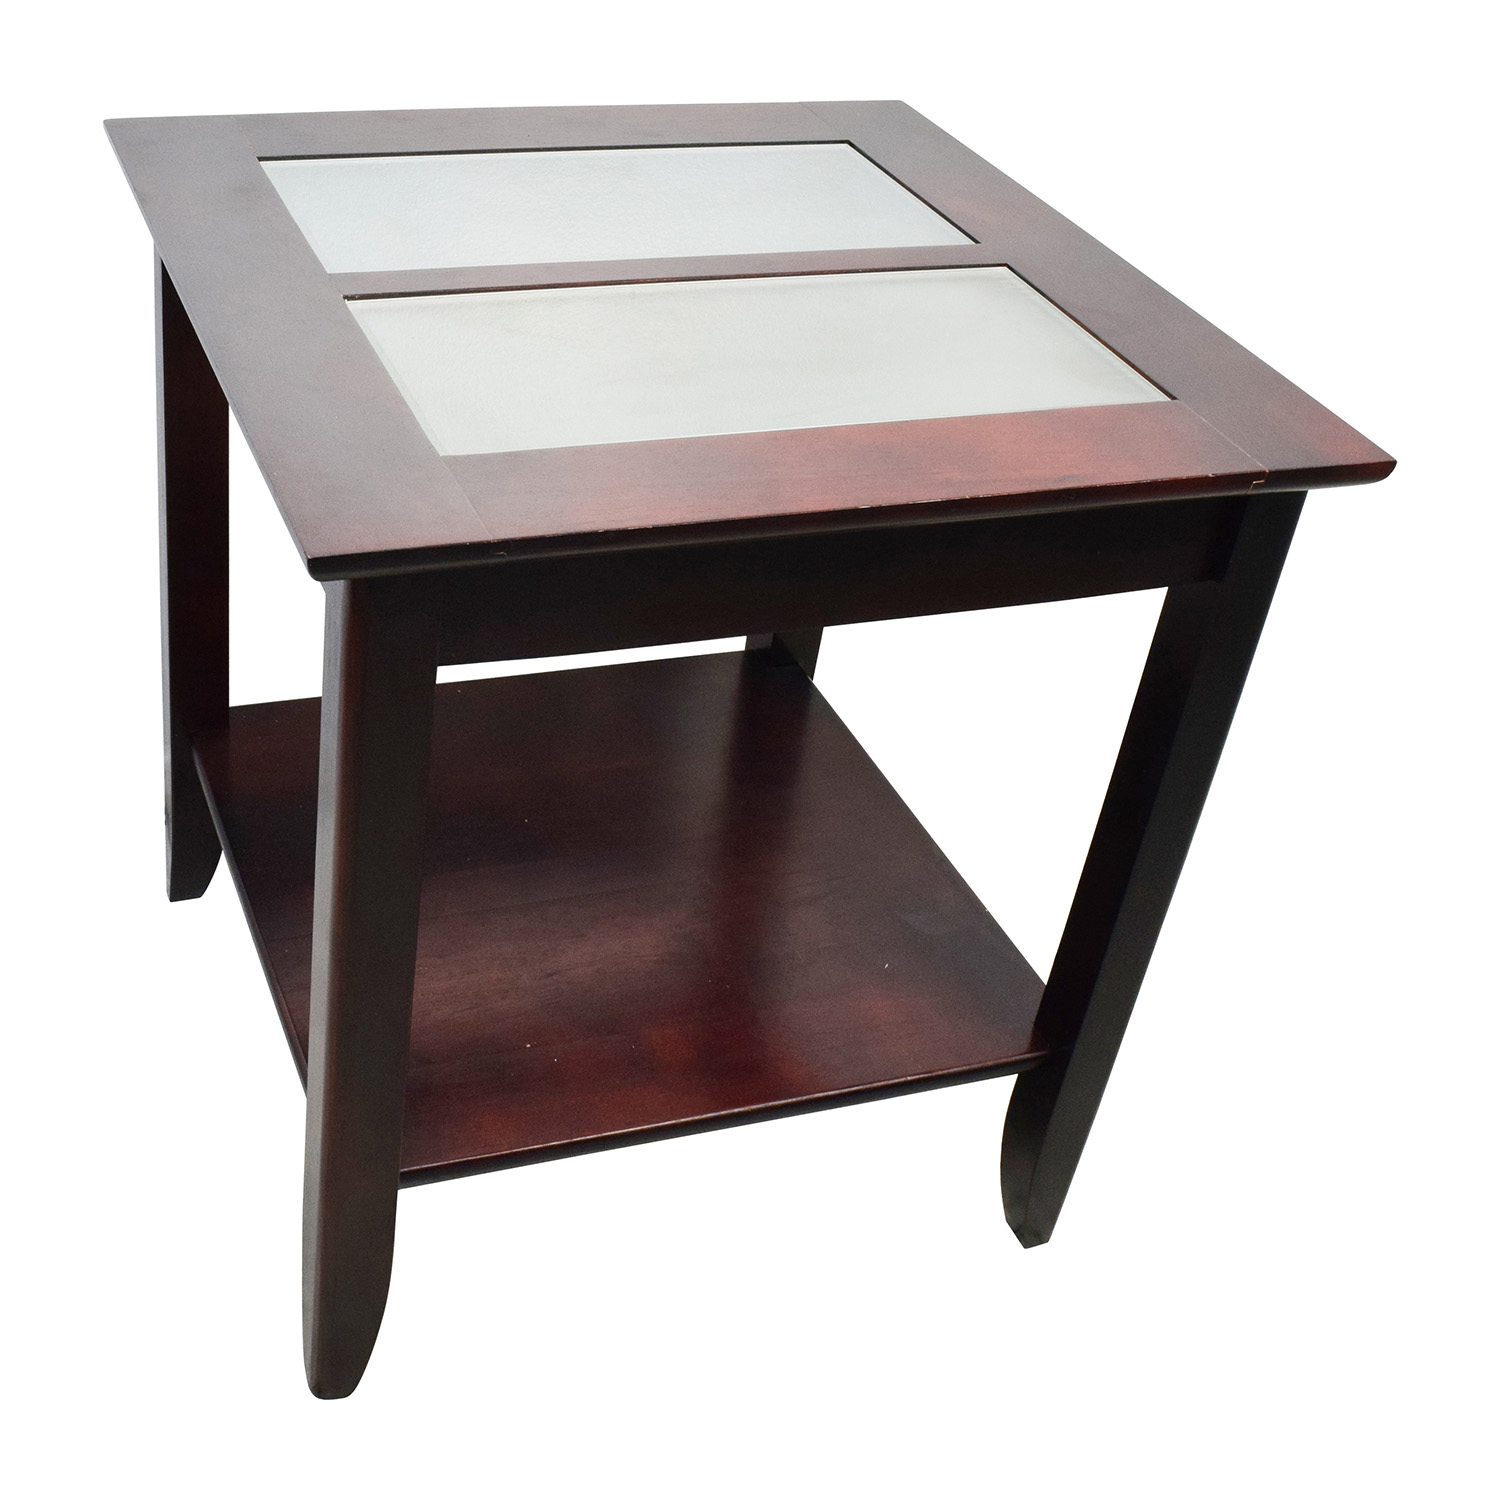 Buy Glass Coffee Table 85 Off Target Target Glass And Wood Coffee Table Tables